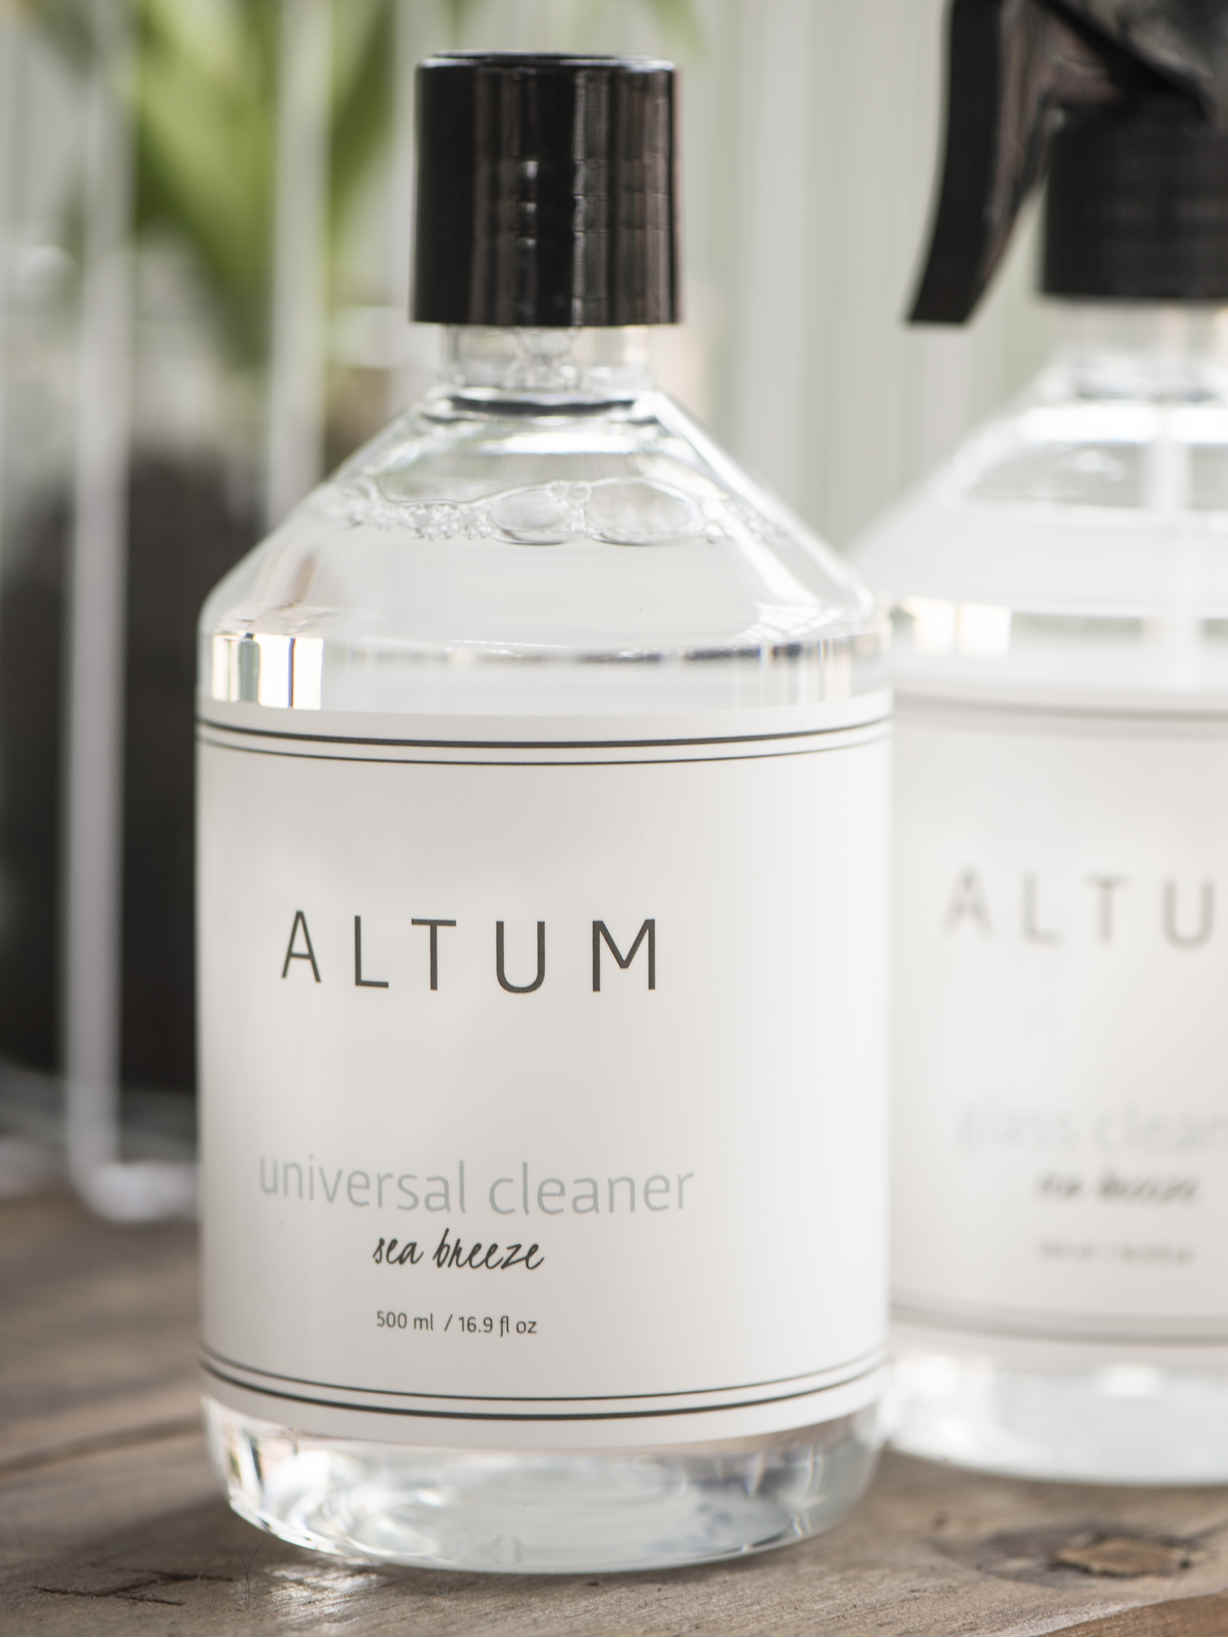 Nordic House Altum Universal Cleaner - Sea Breeze